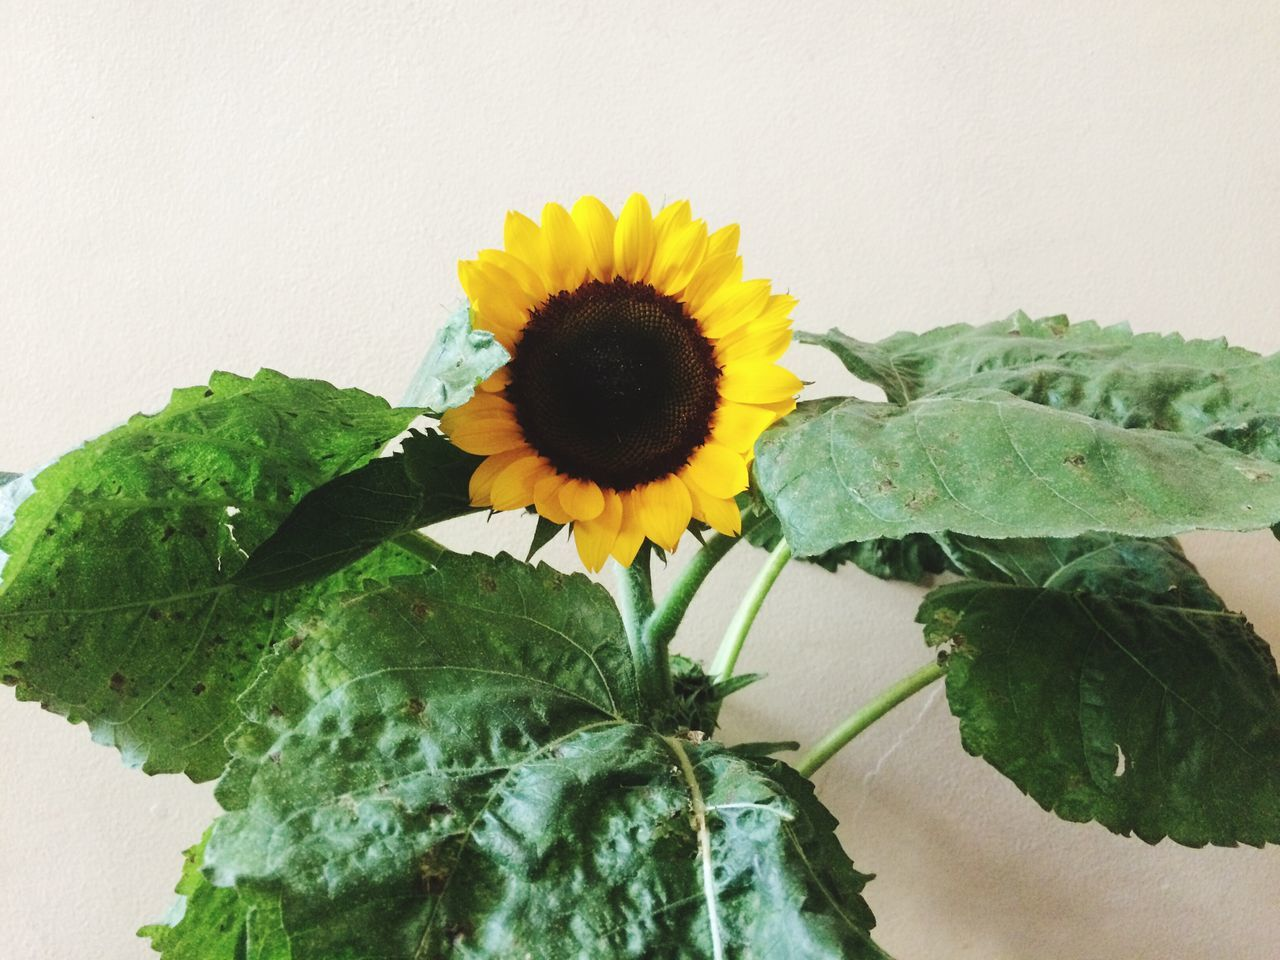 flower, freshness, fragility, leaf, petal, growth, flower head, beauty in nature, plant, yellow, no people, nature, green color, close-up, day, sunflower, blooming, outdoors